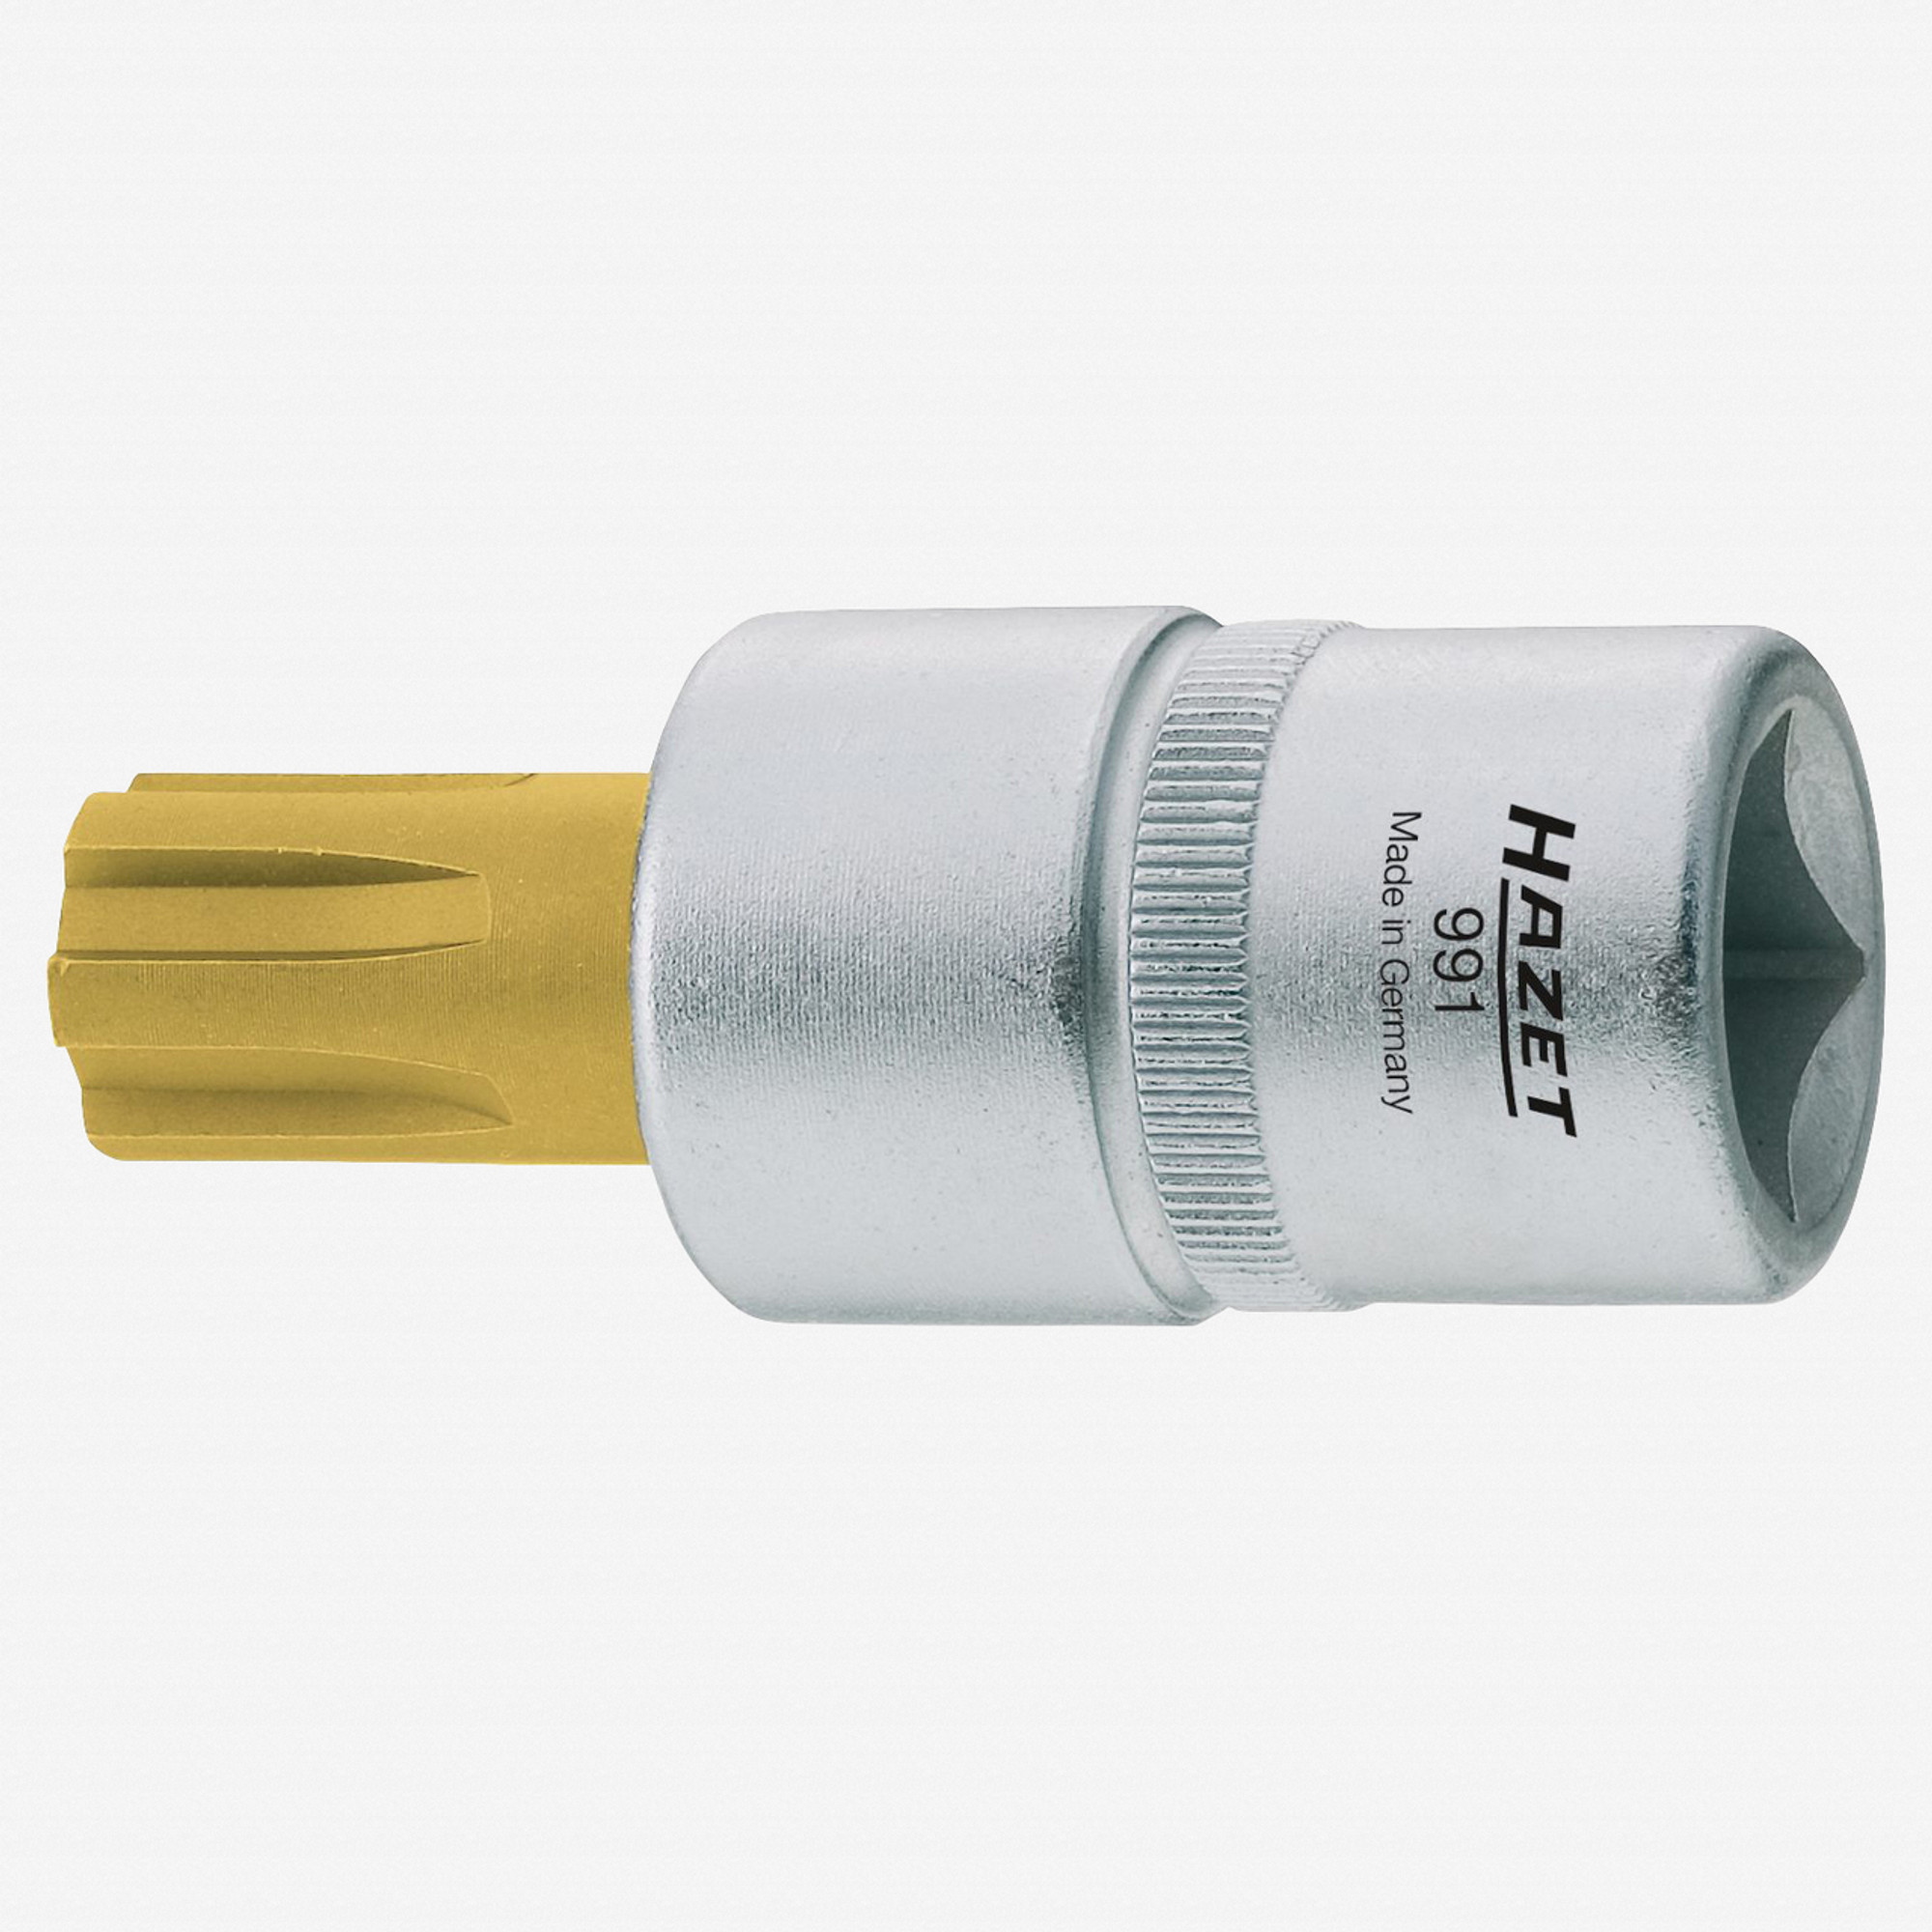 Hazet 991-8 M8 Ribe TiN Socket 1//2/""